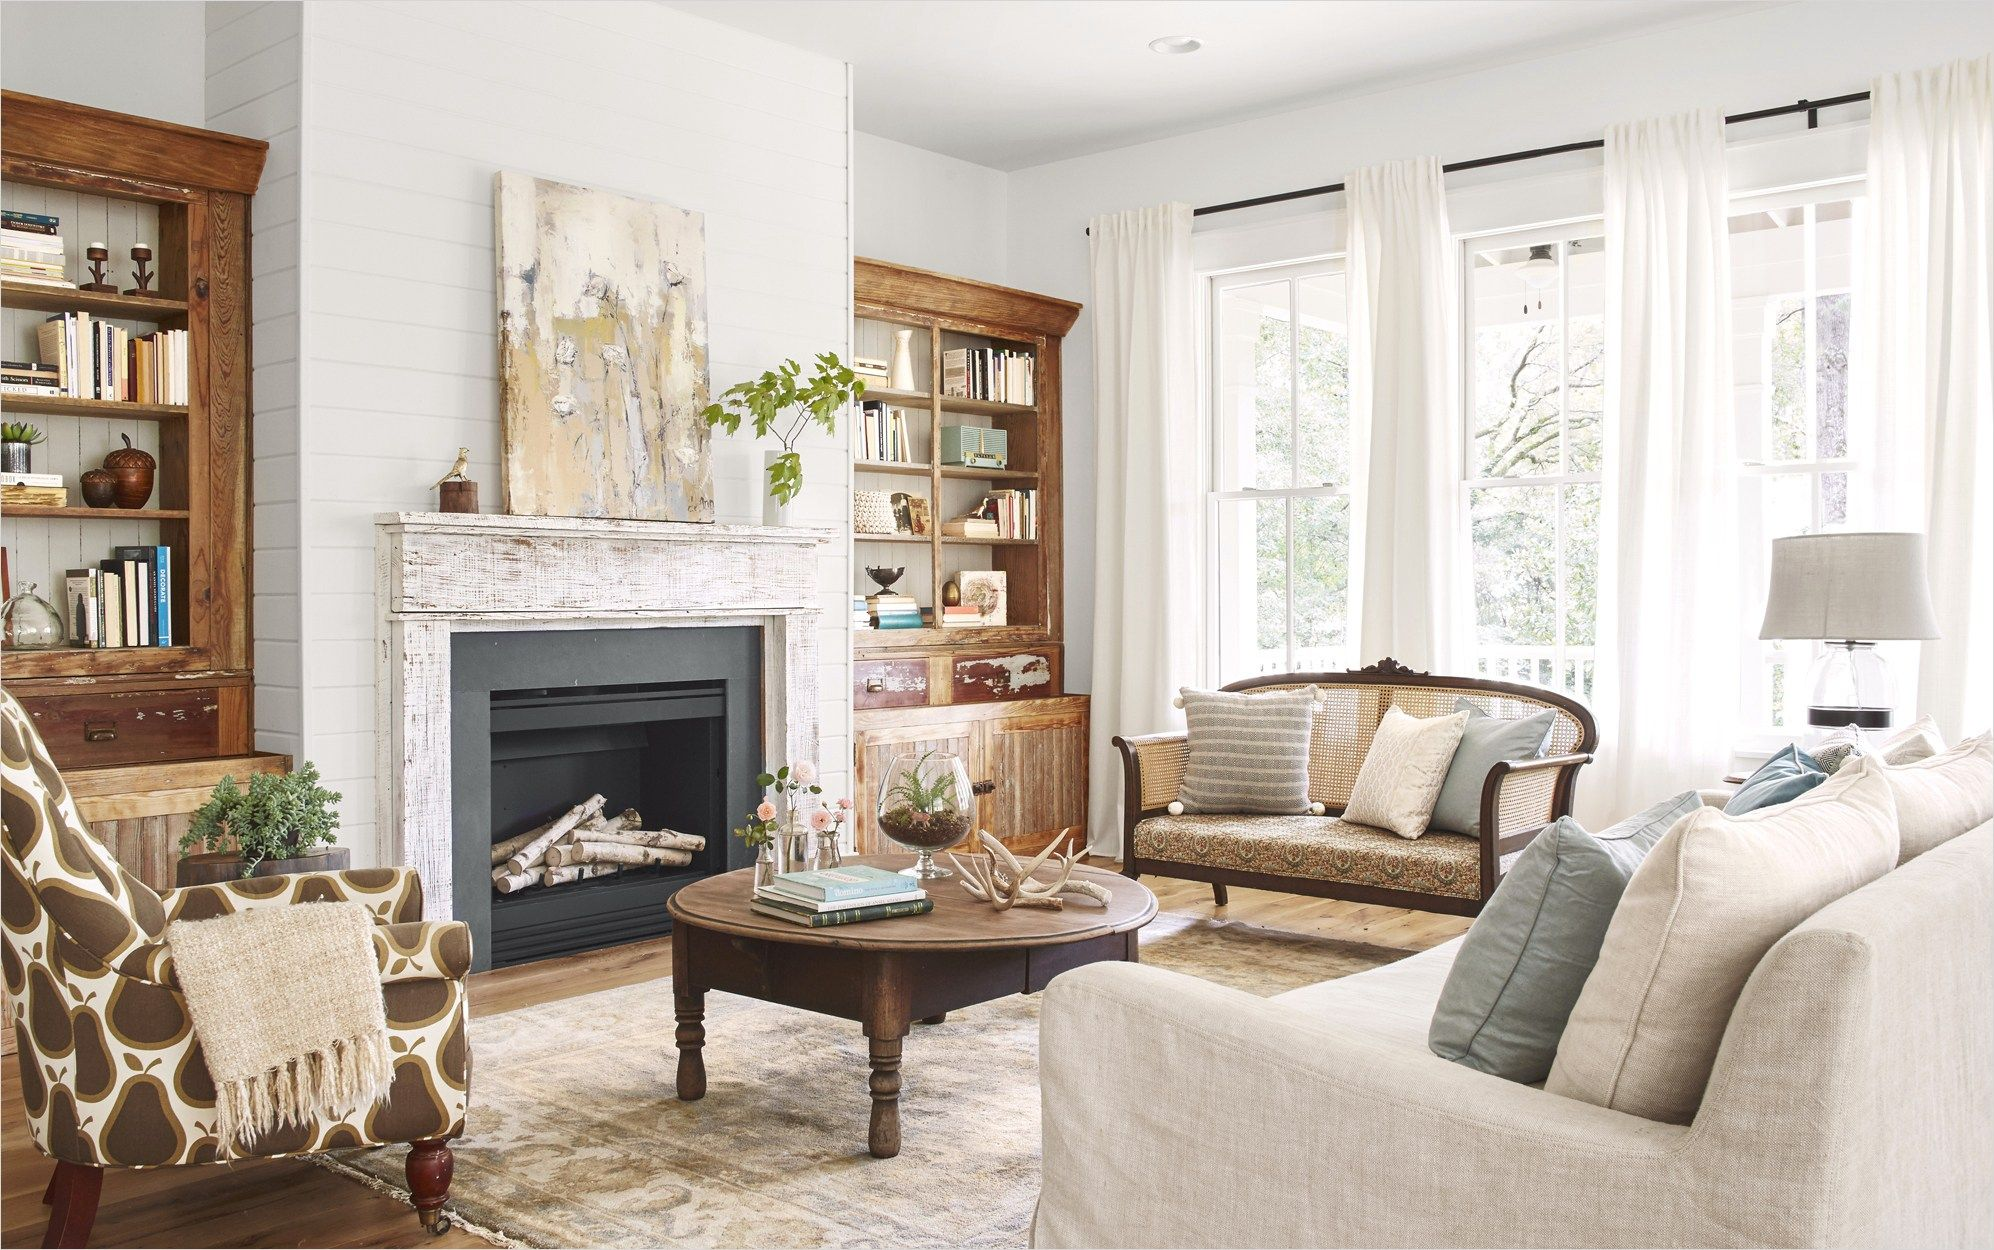 42 Cozy Country Farmhouse Living Room 75 Lauren Crouch Georgia Farmhouse Souther Farm House Living Room Country Style Living Room Country Living Room Furniture